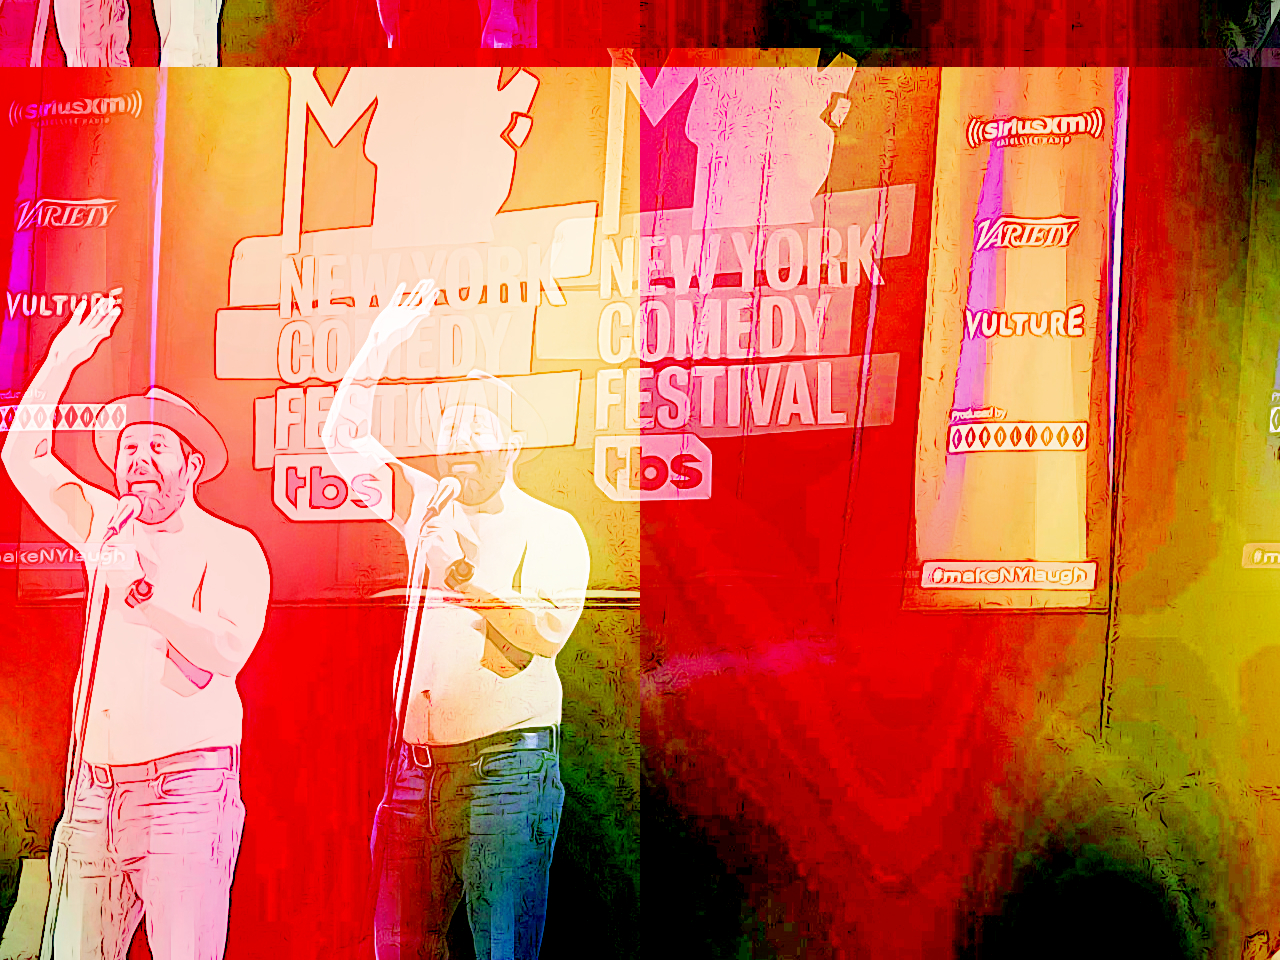 We Covered the New York Comedy Festival Checking Out Bill